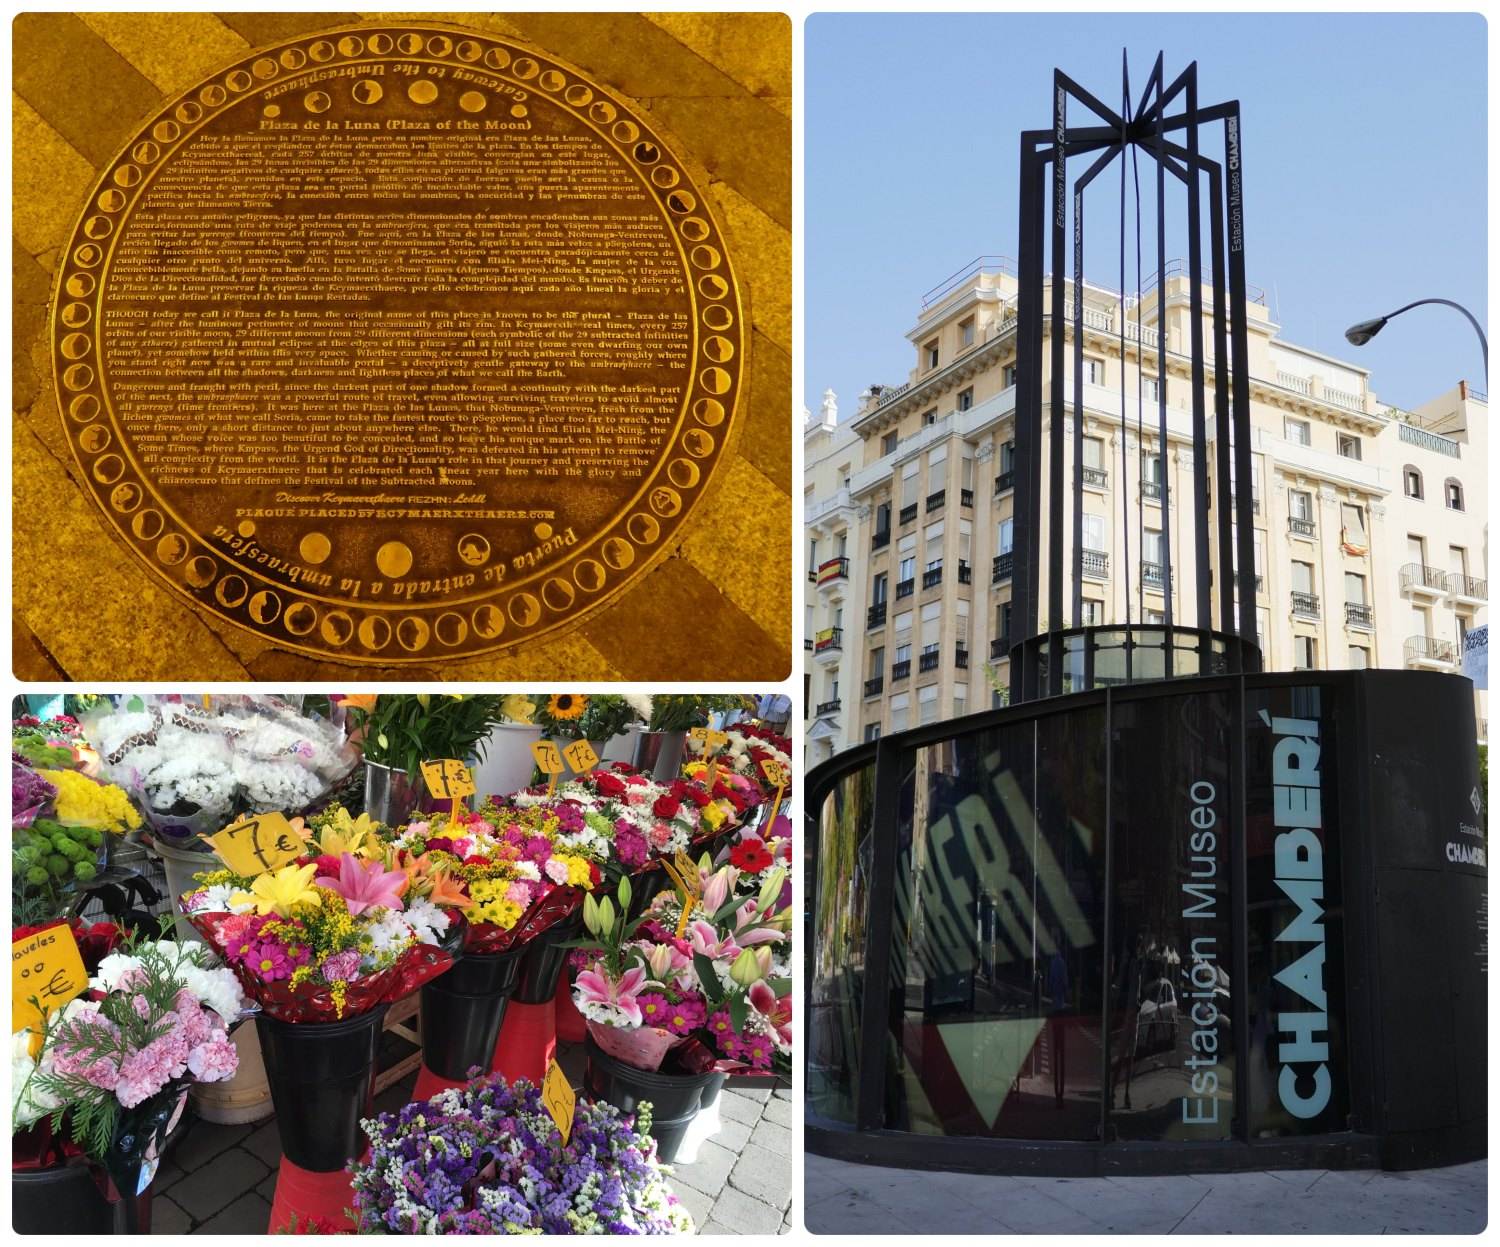 Madrid, Spain. Clockwise (from the top left): Plaza de la Luna, Chamberi Station Museum (Estacion Museo Chamberi), flowers for sale at a street stand.